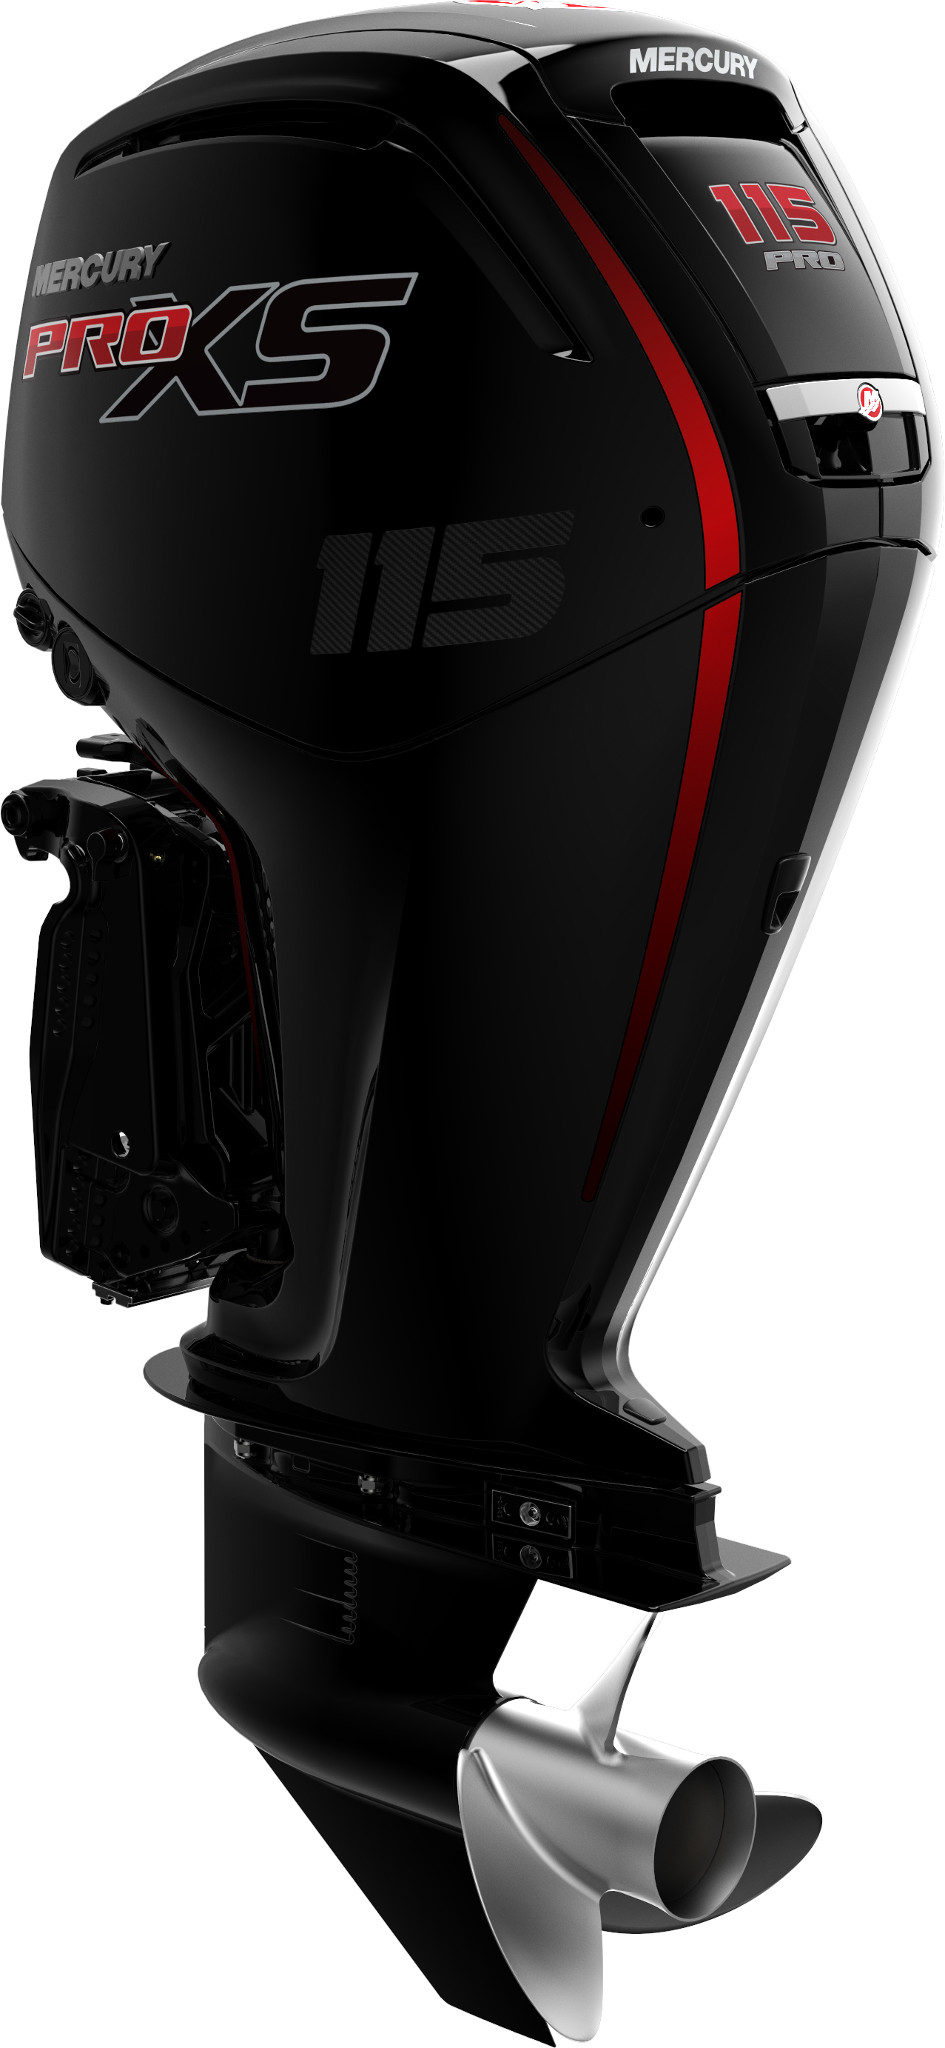 Mercury Pro XS outboard engine